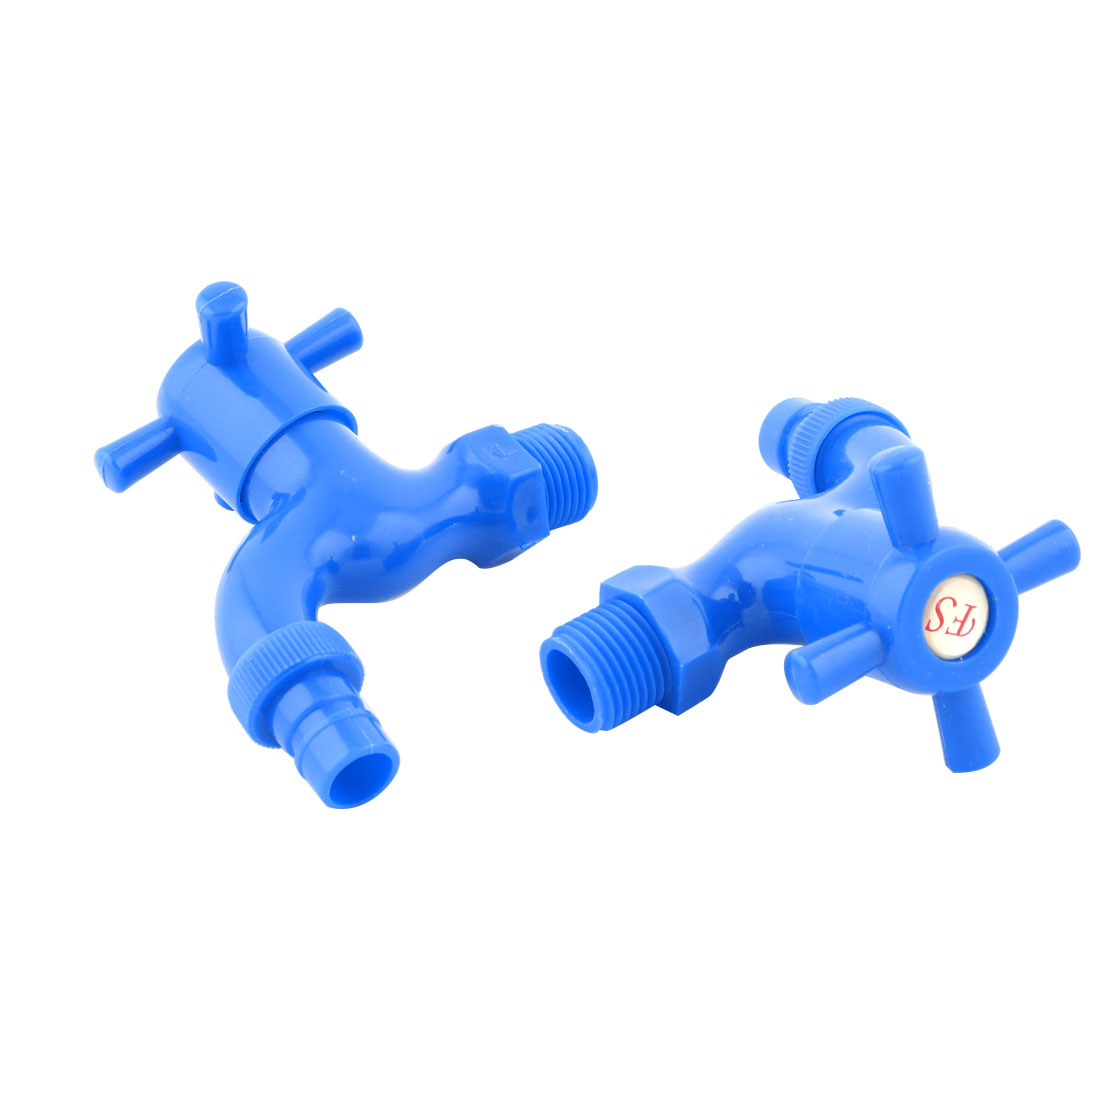 Household Plastic Replaceable Turn Handle Water Tap Stopcock Faucet Blue 2 Pcs